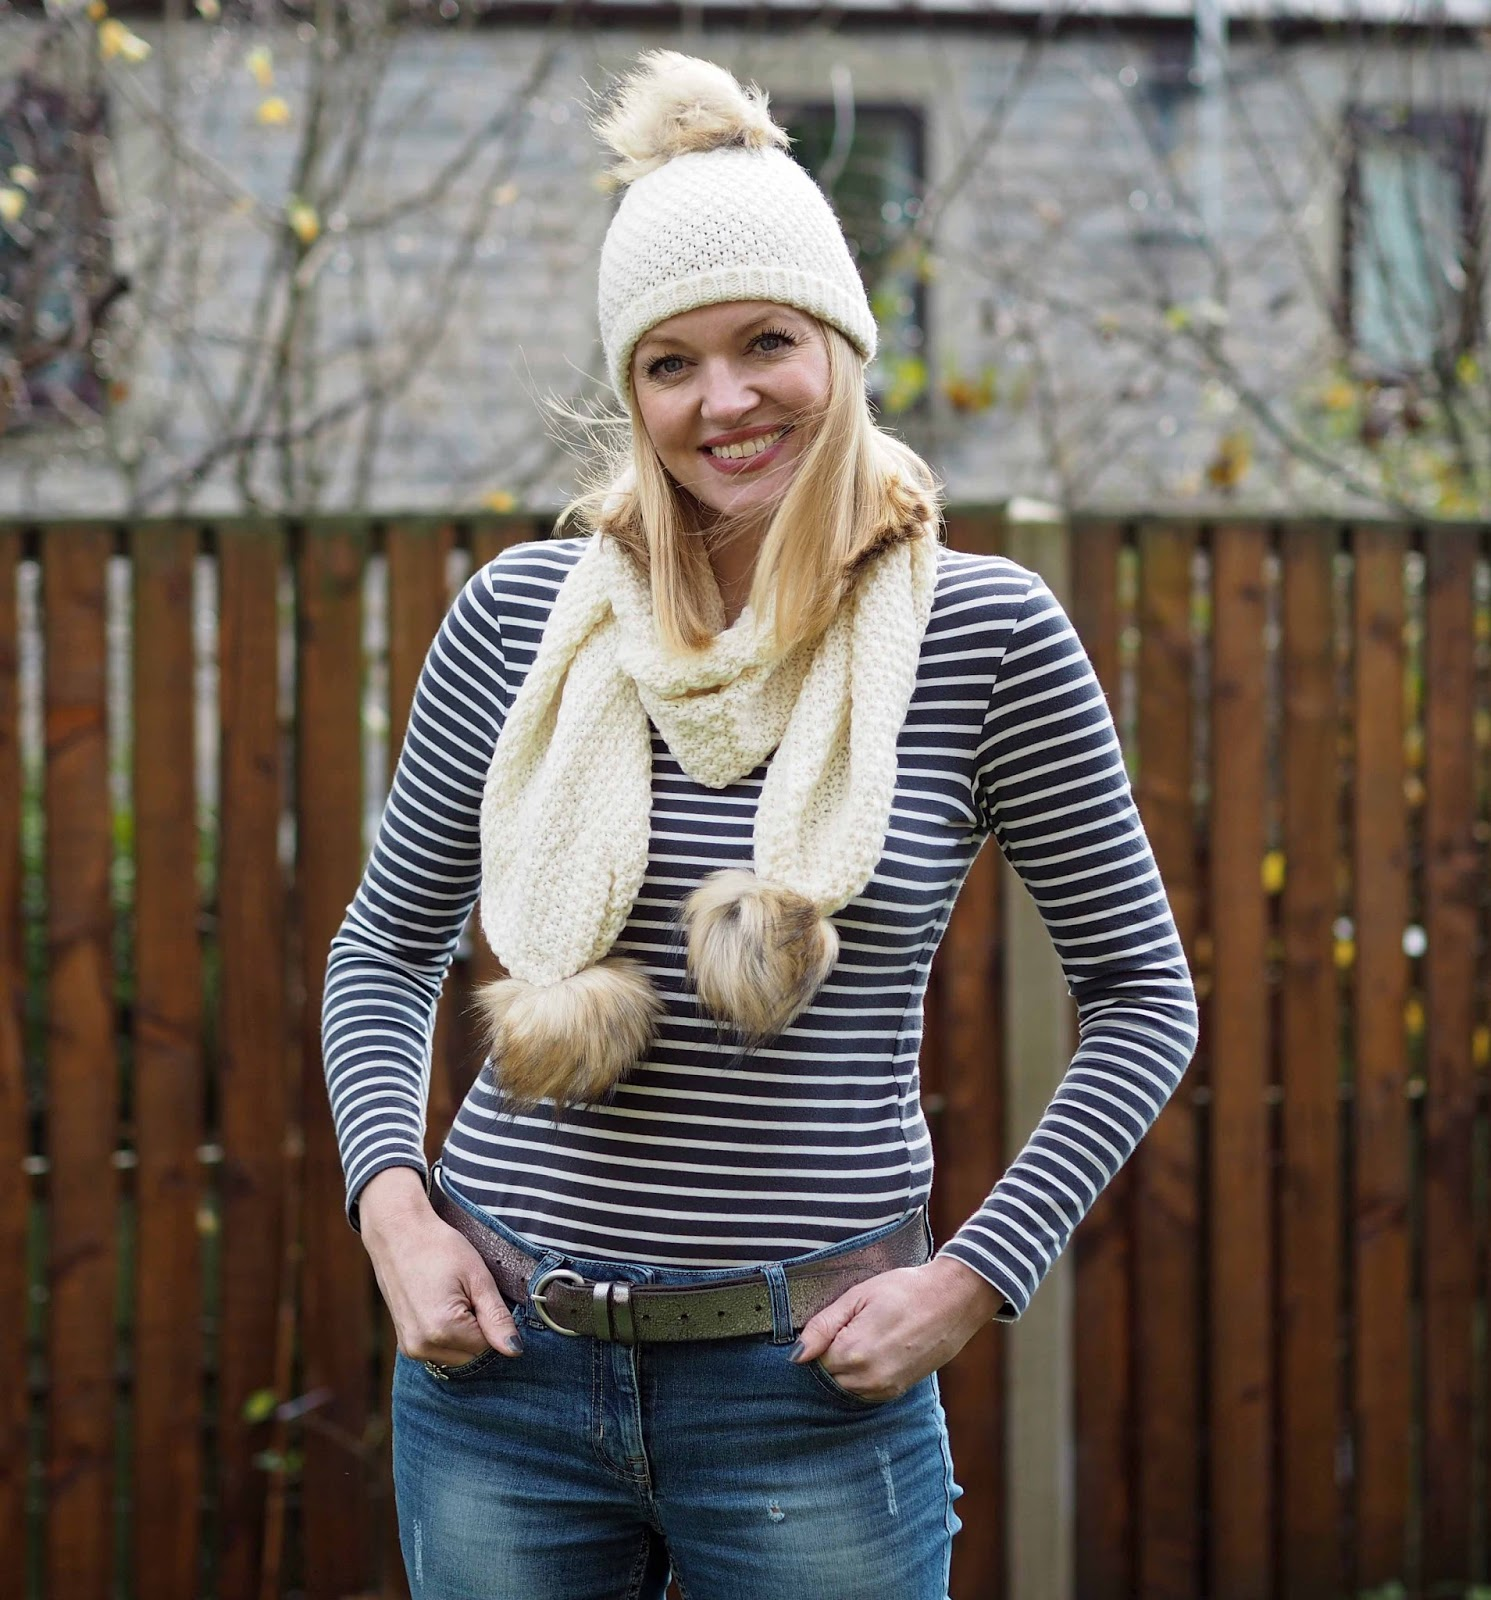 Dash winter warmers and Christmas gift ideas